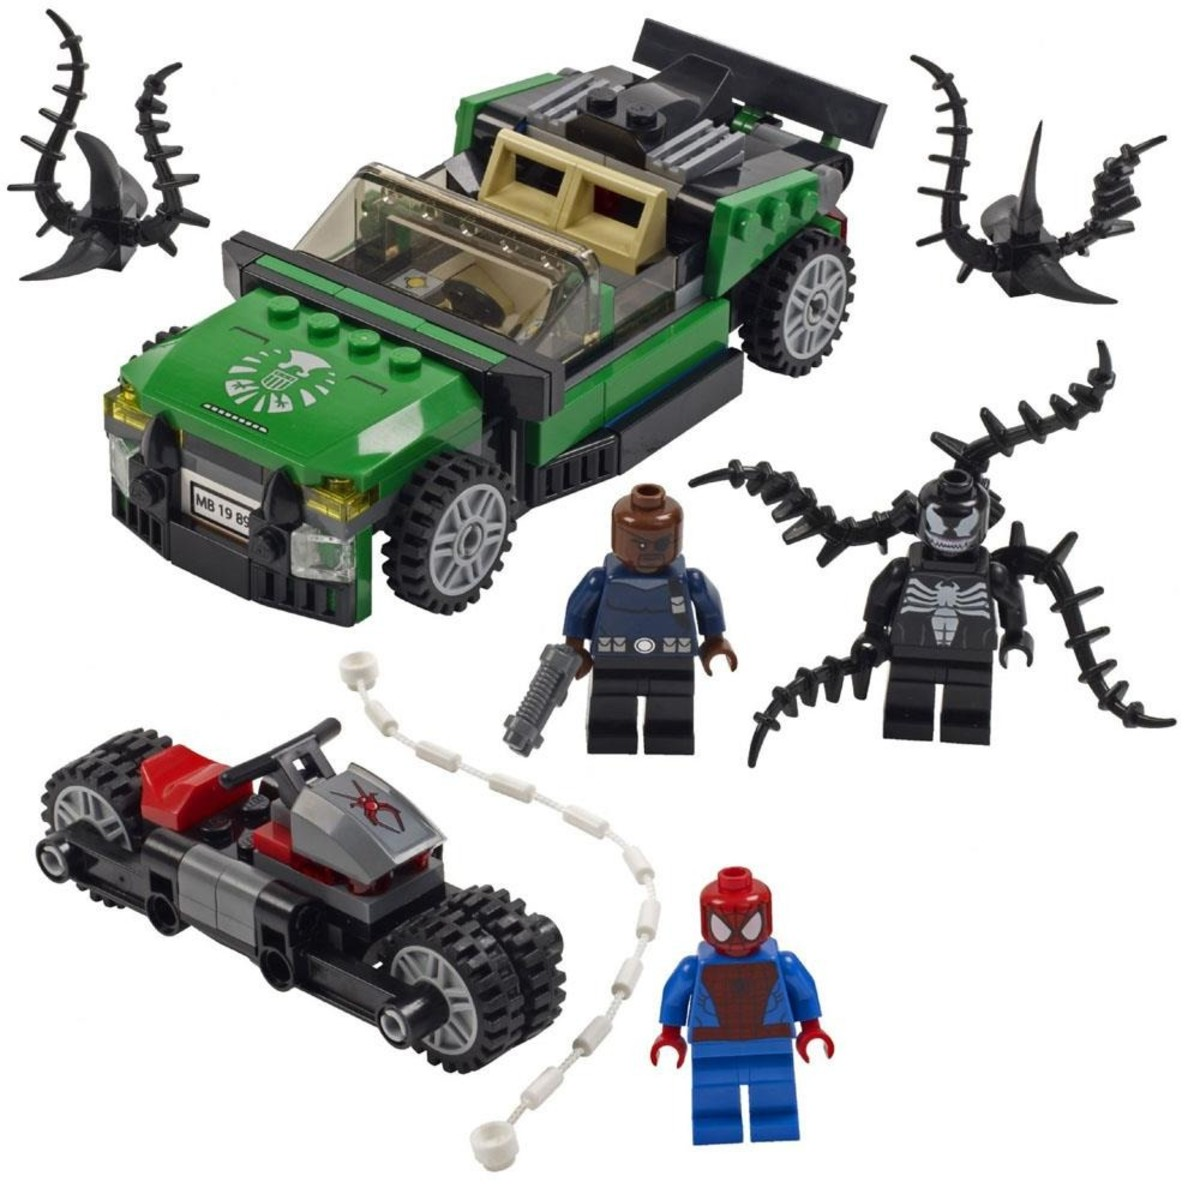 LEGO Super Heroes Spider-Man: Spider-Cycle Chase 76004 Assembled